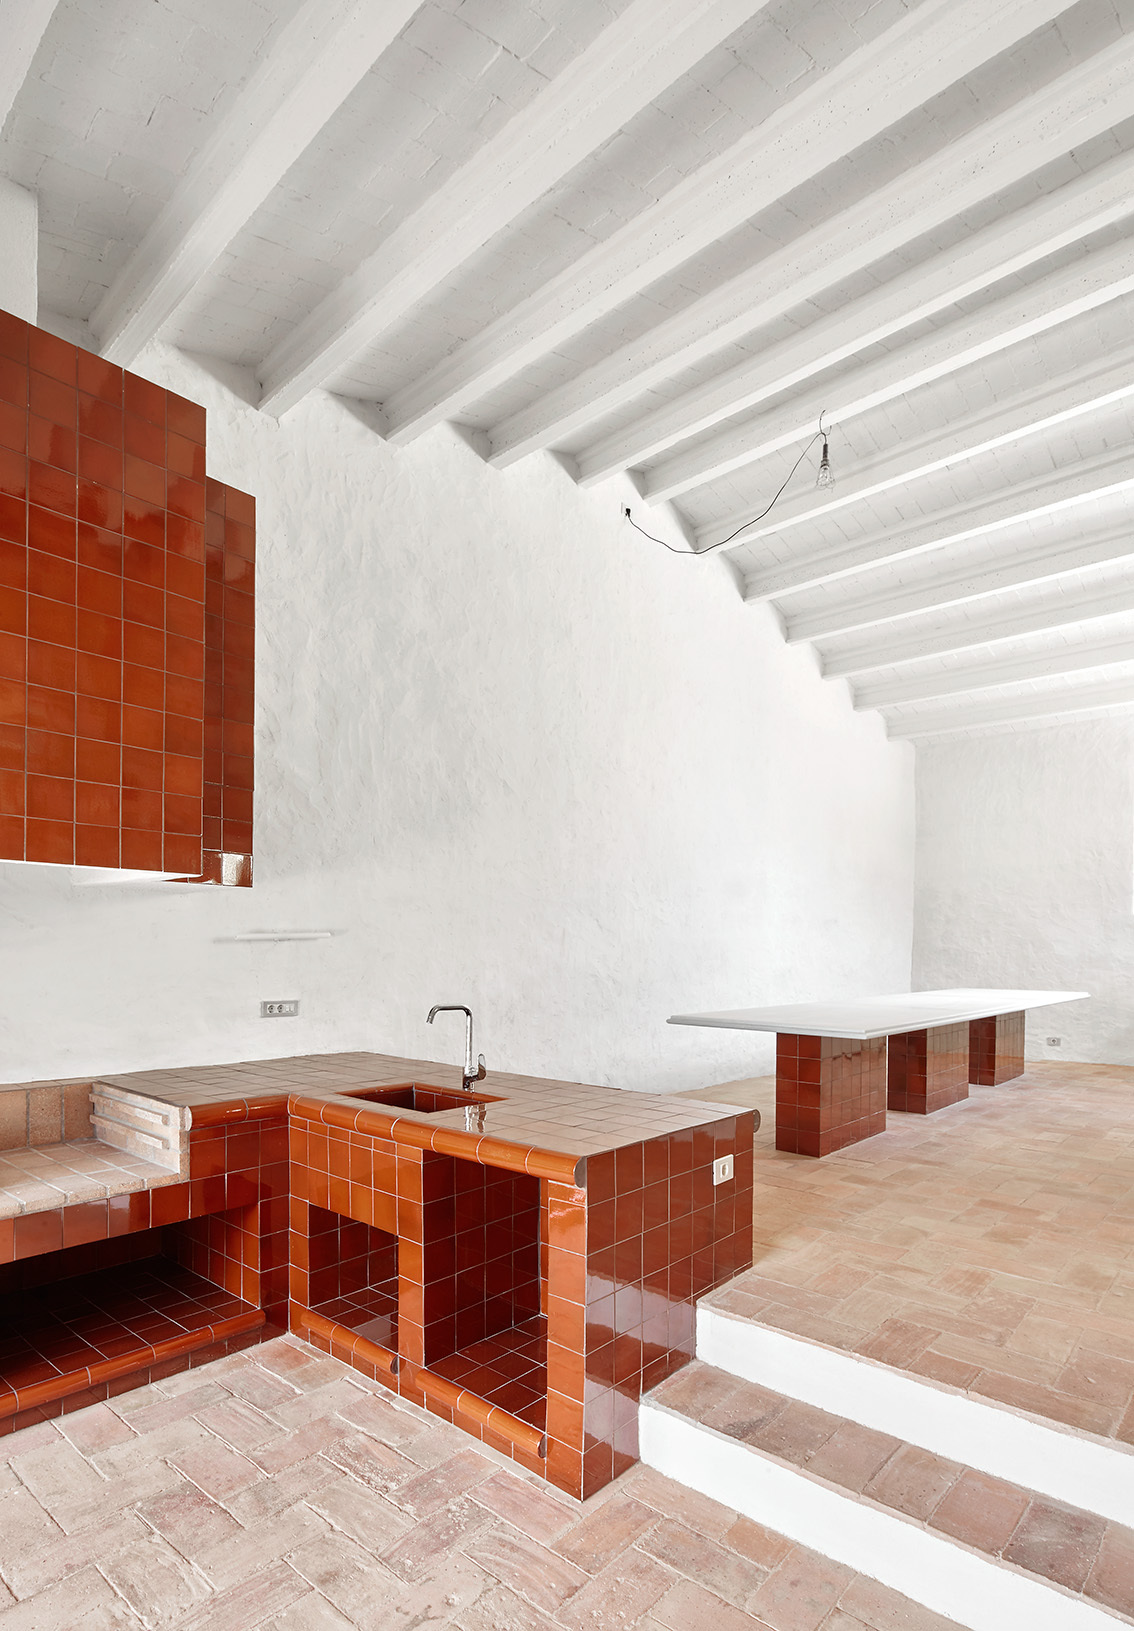 Gallery of country house renovation in empord arquitectura g 14 - Arquitectura girona ...